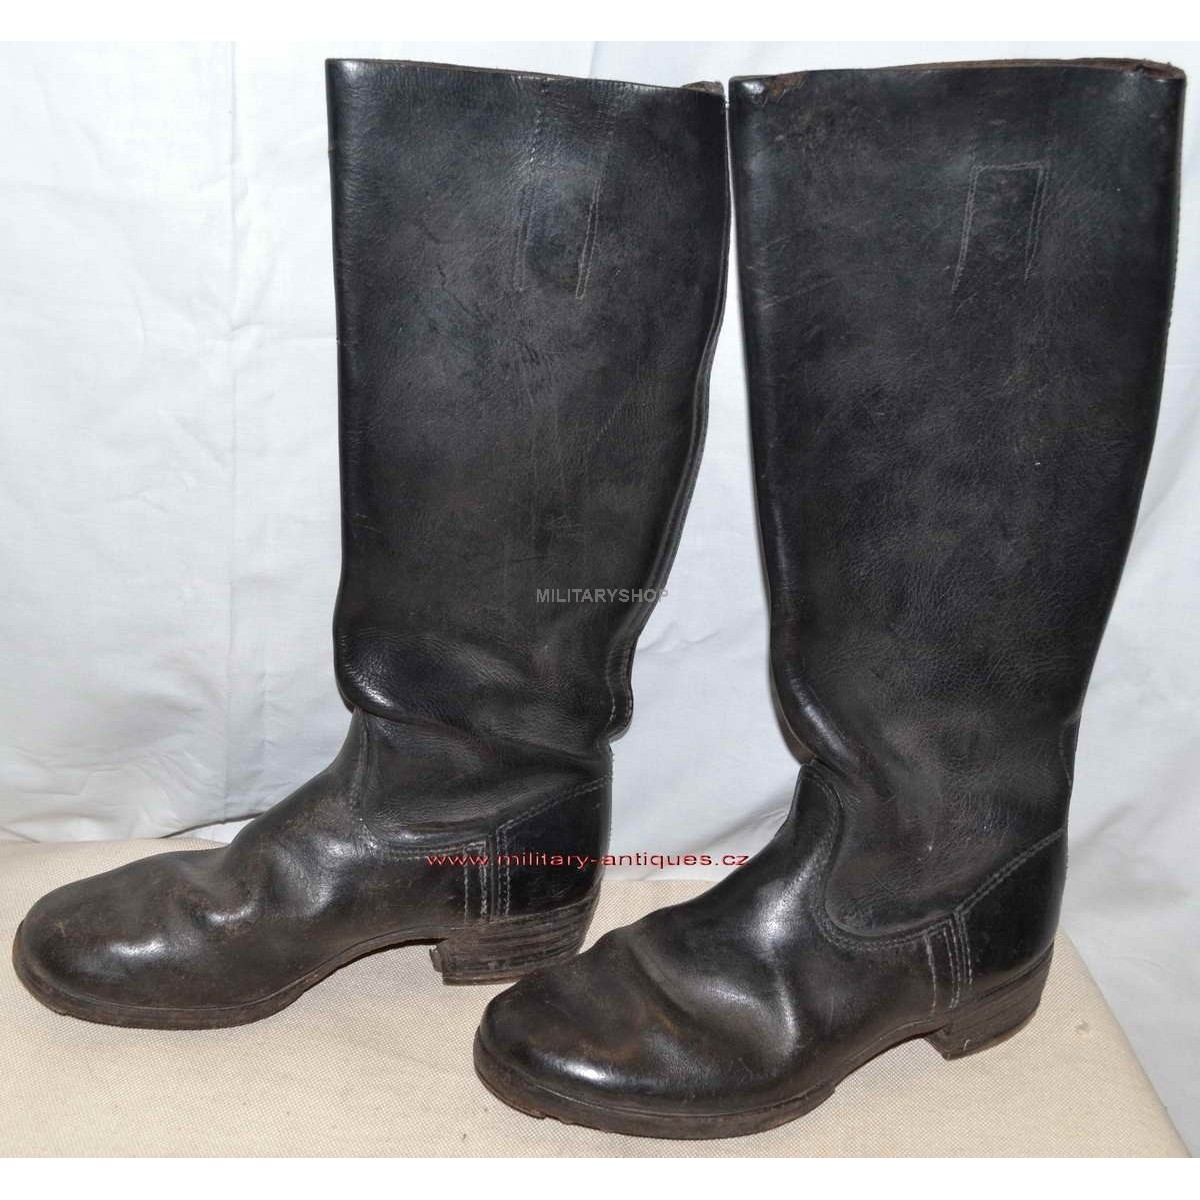 Ww2 Combat Boots German Ww2 Marching Boots